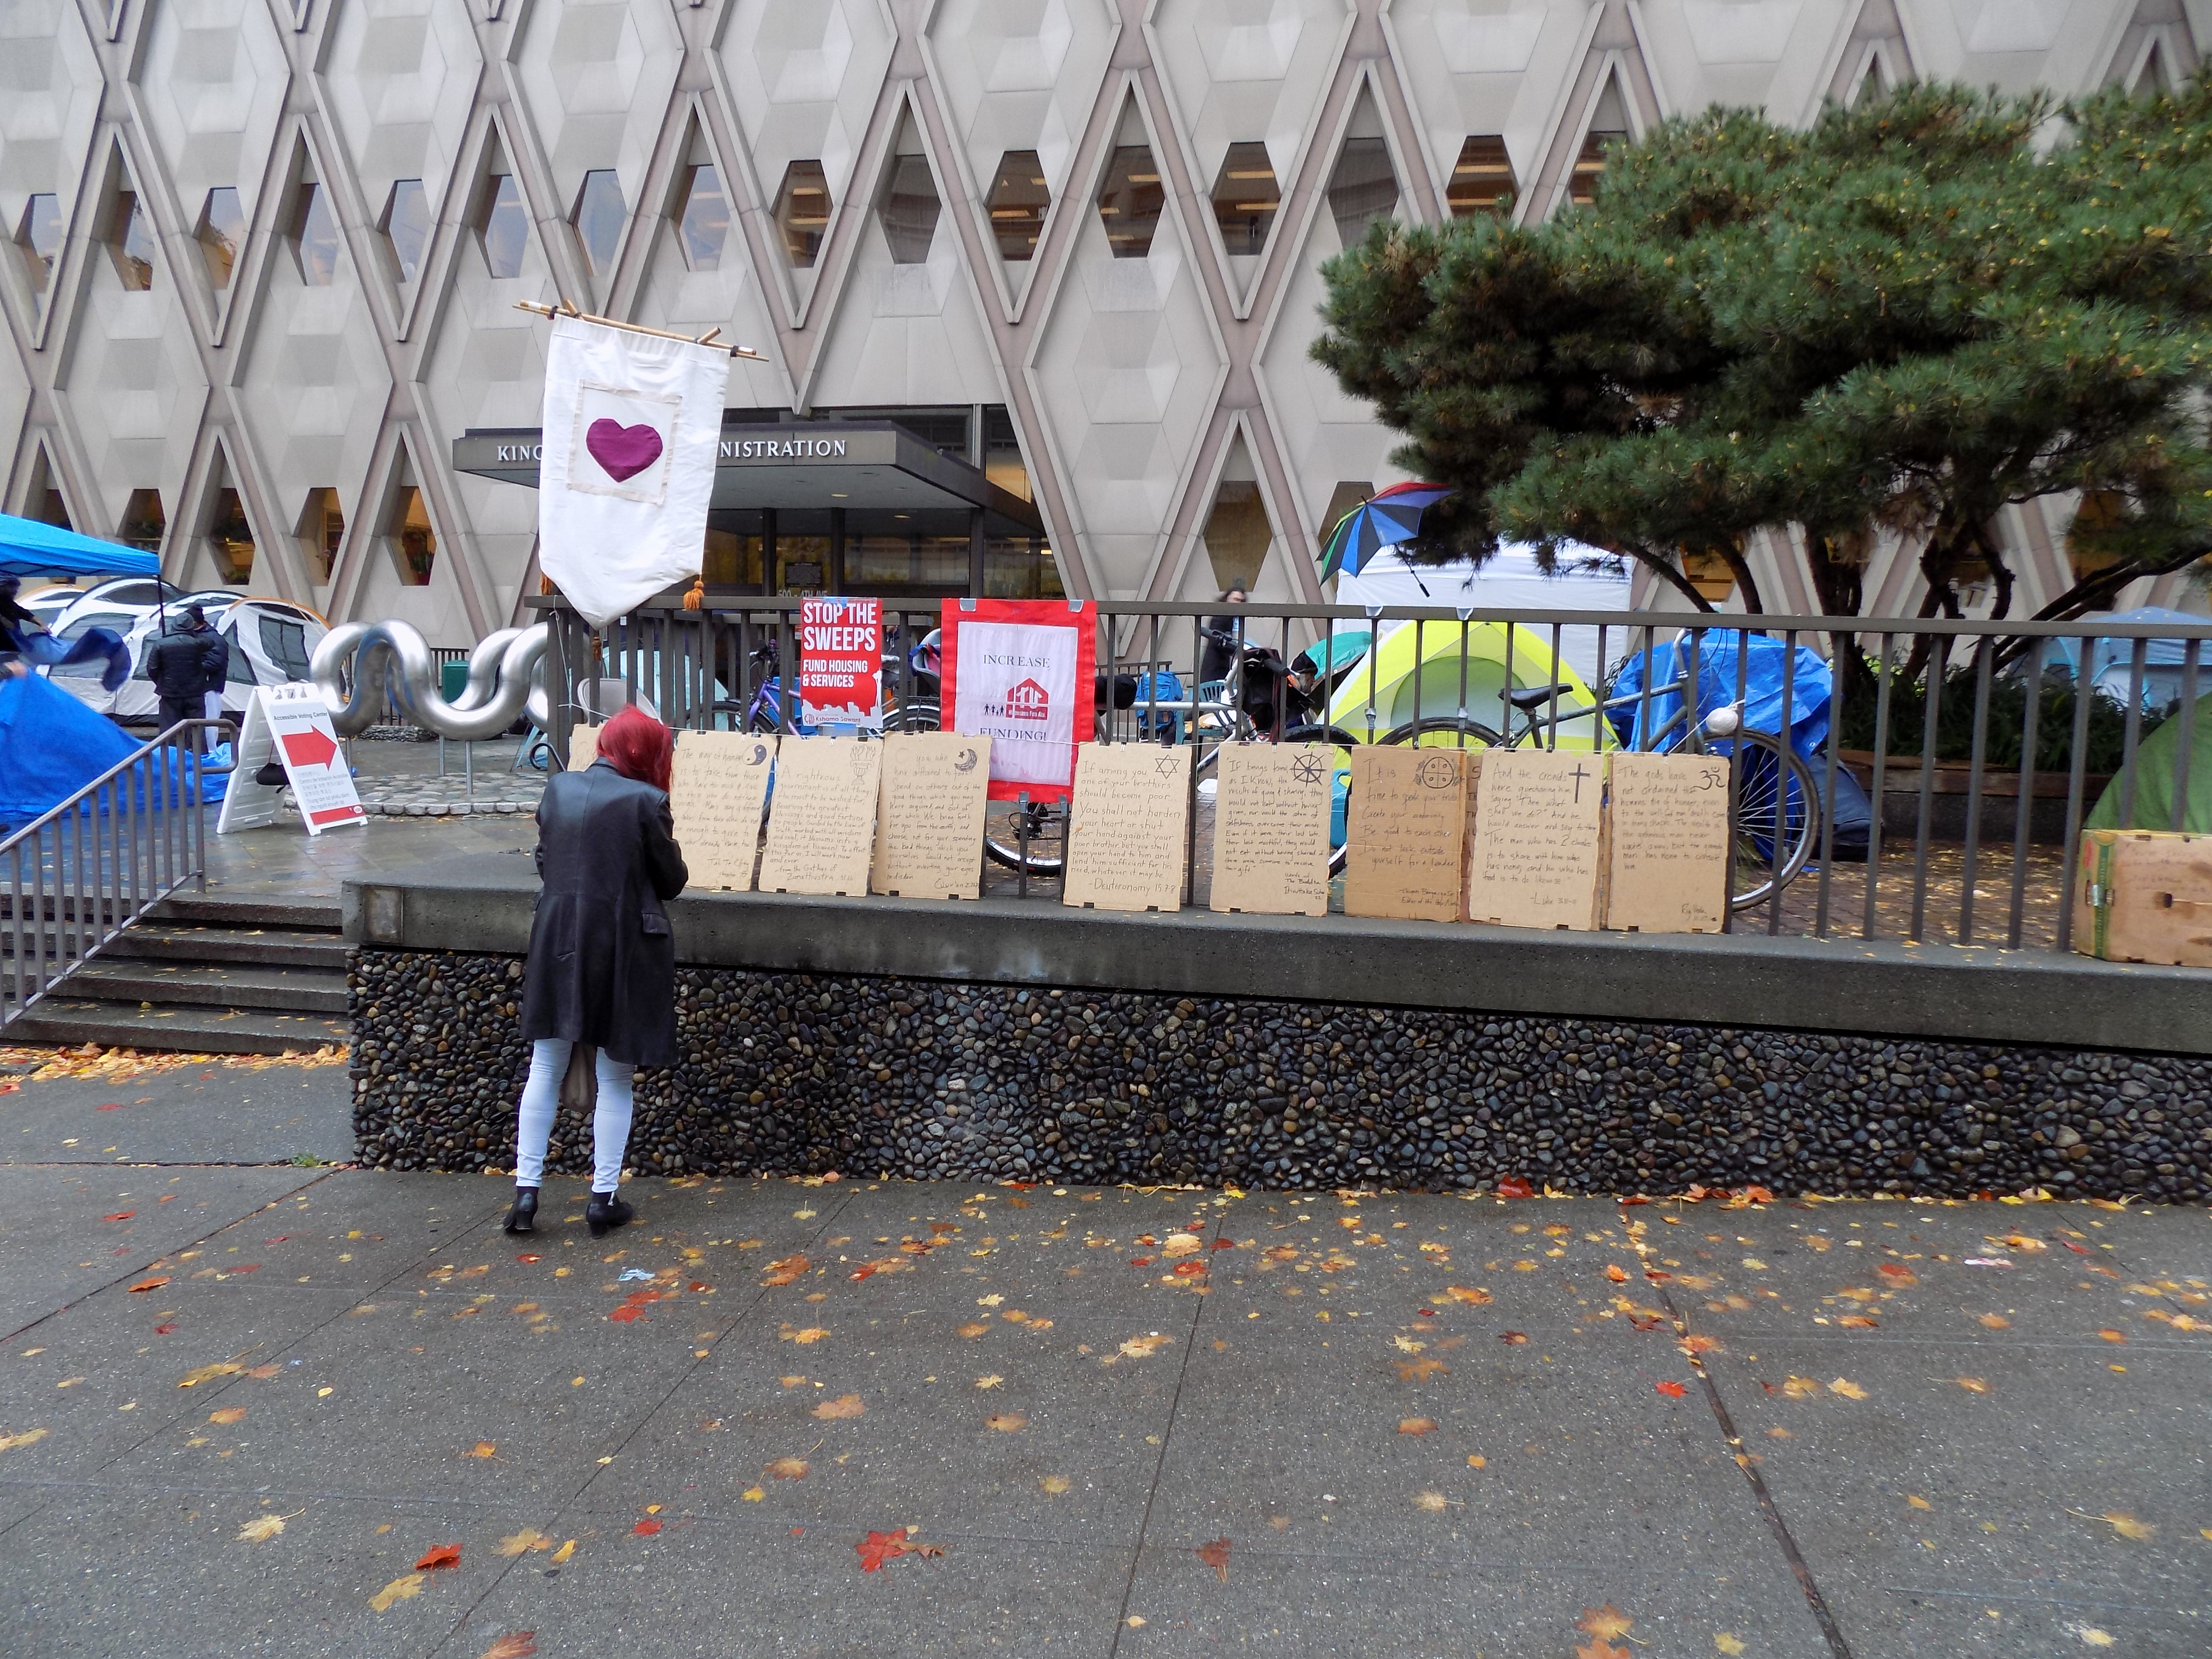 Image 3 Caption--A pedestrian examines a display at the camp erected by Occupy Chaplains.